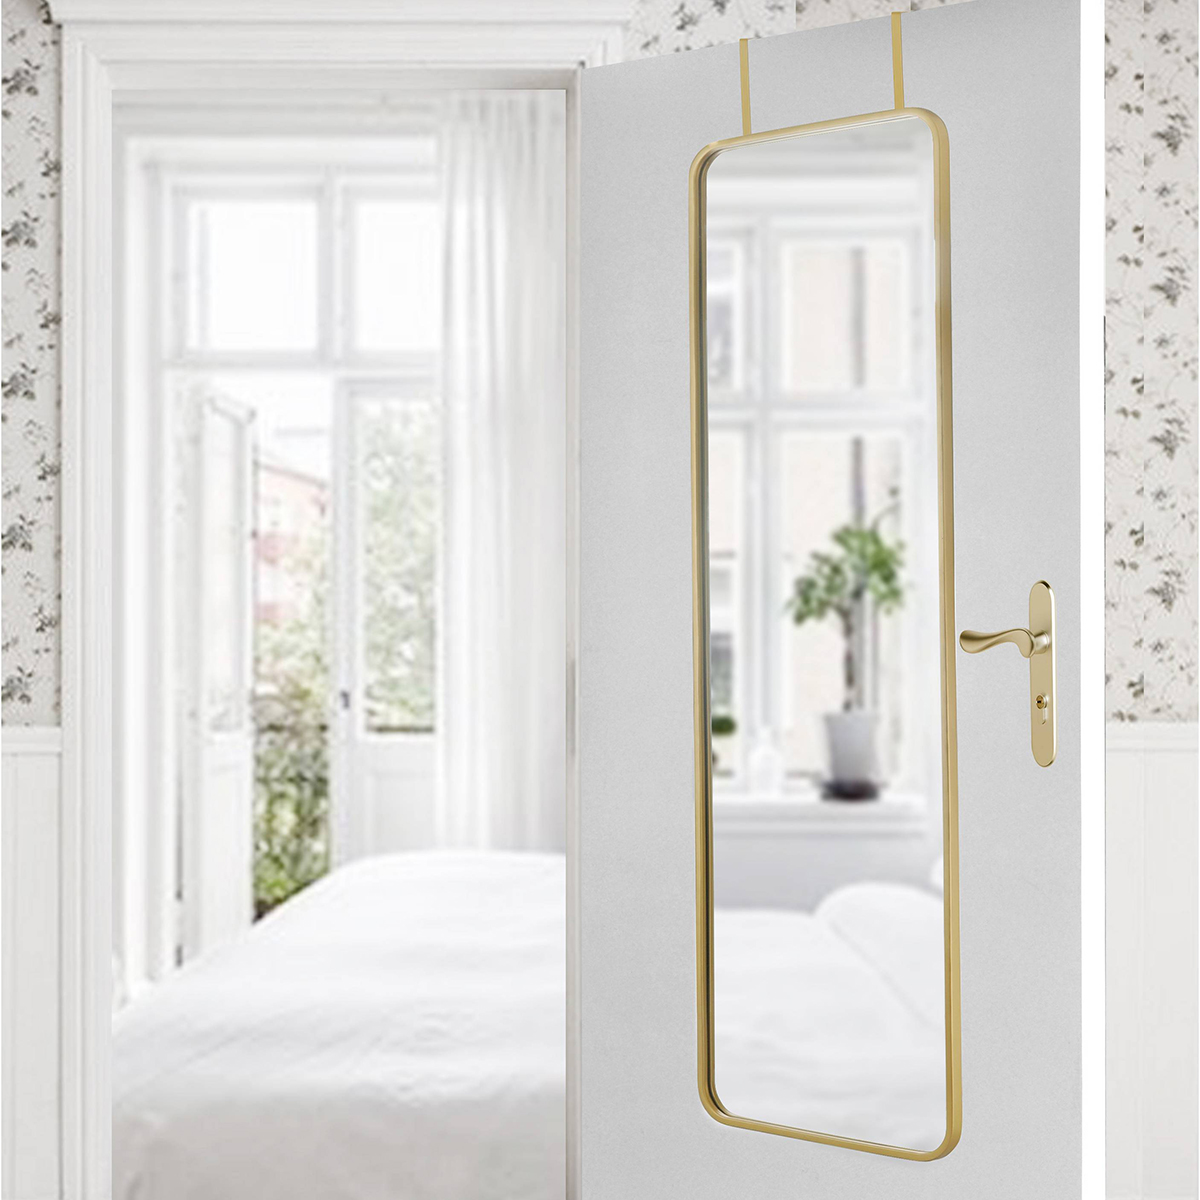 Magnificent Yes They Actually Exist 9 Attractive Over The Door Mirrors Apartment Therapy Door Handles Collection Olytizonderlifede